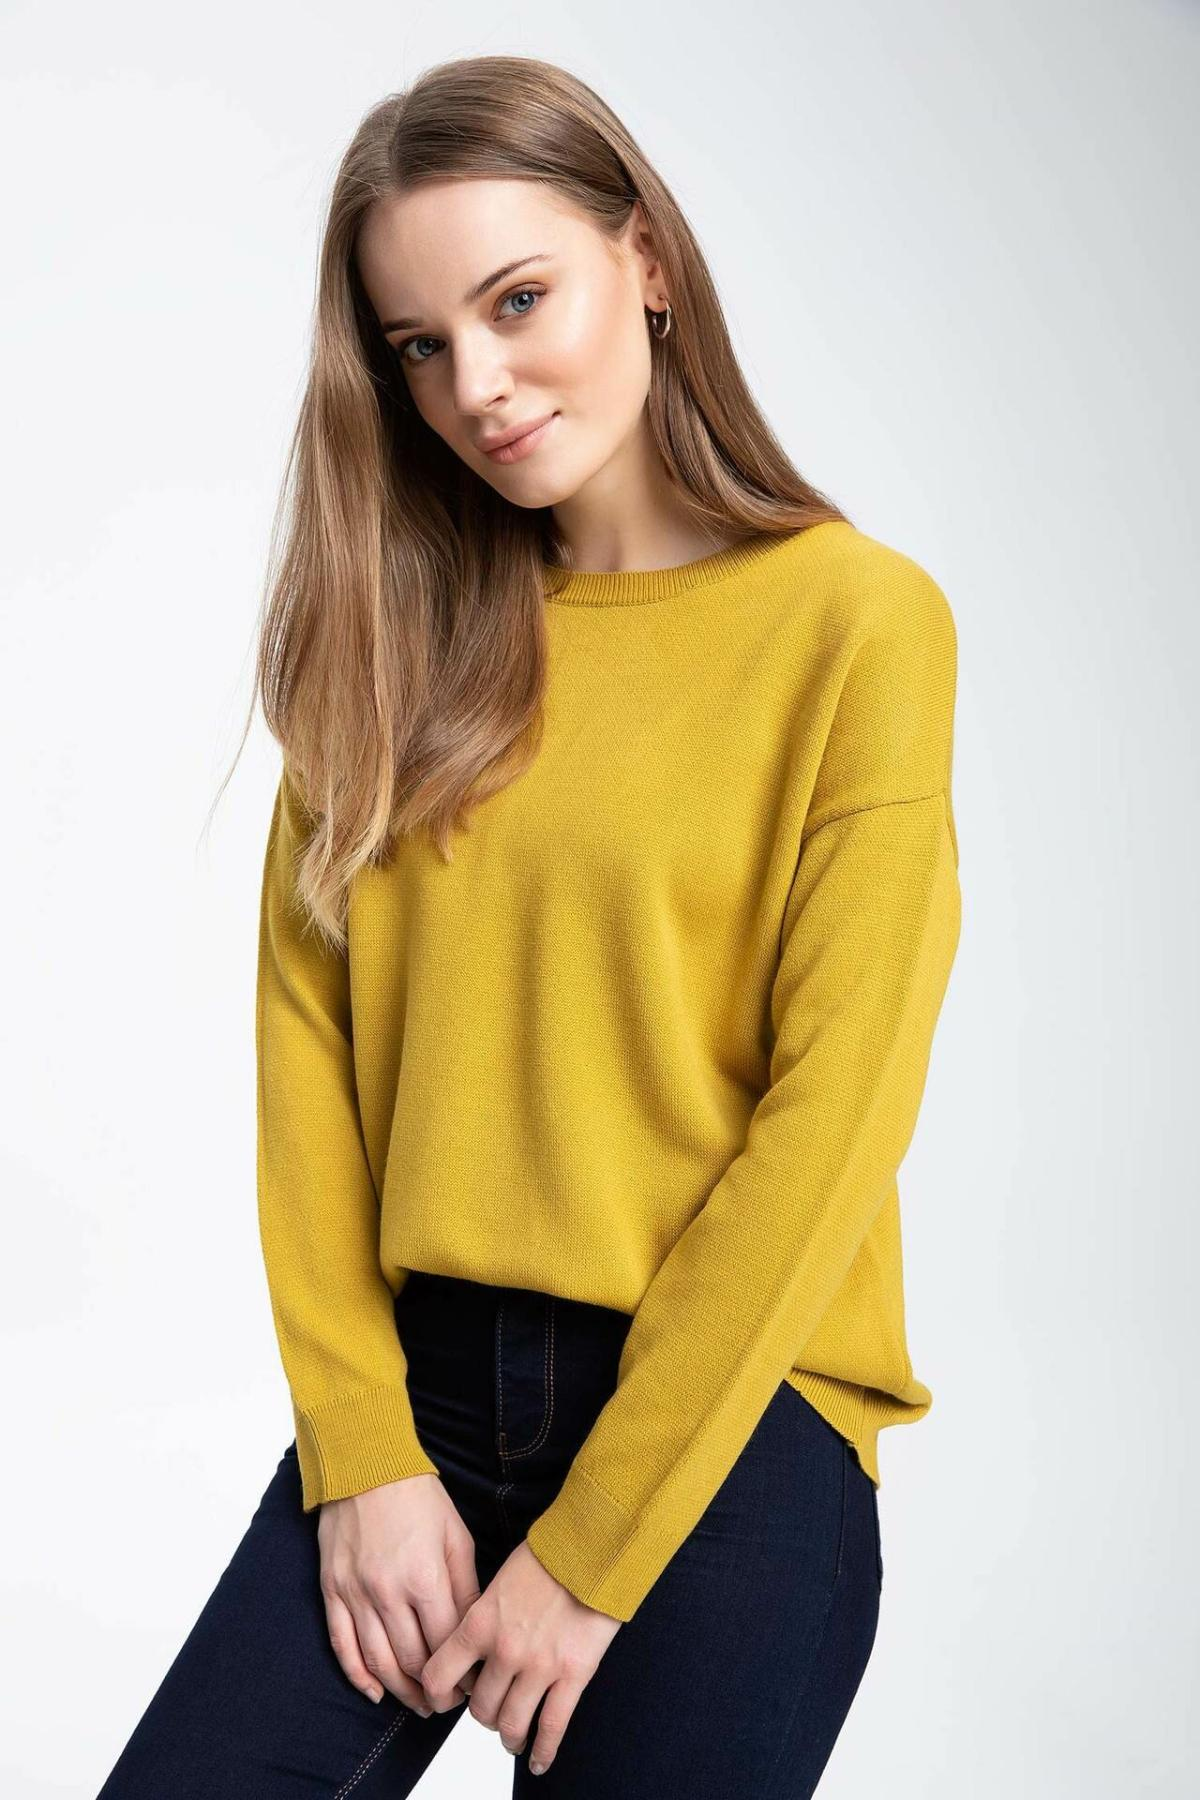 DeFacto Woman Autumn Solid Color Knitted Pullovers Women Casual Black O-neck Sweatshirts Female Knit Tops Tunic-I7130AZ18AU